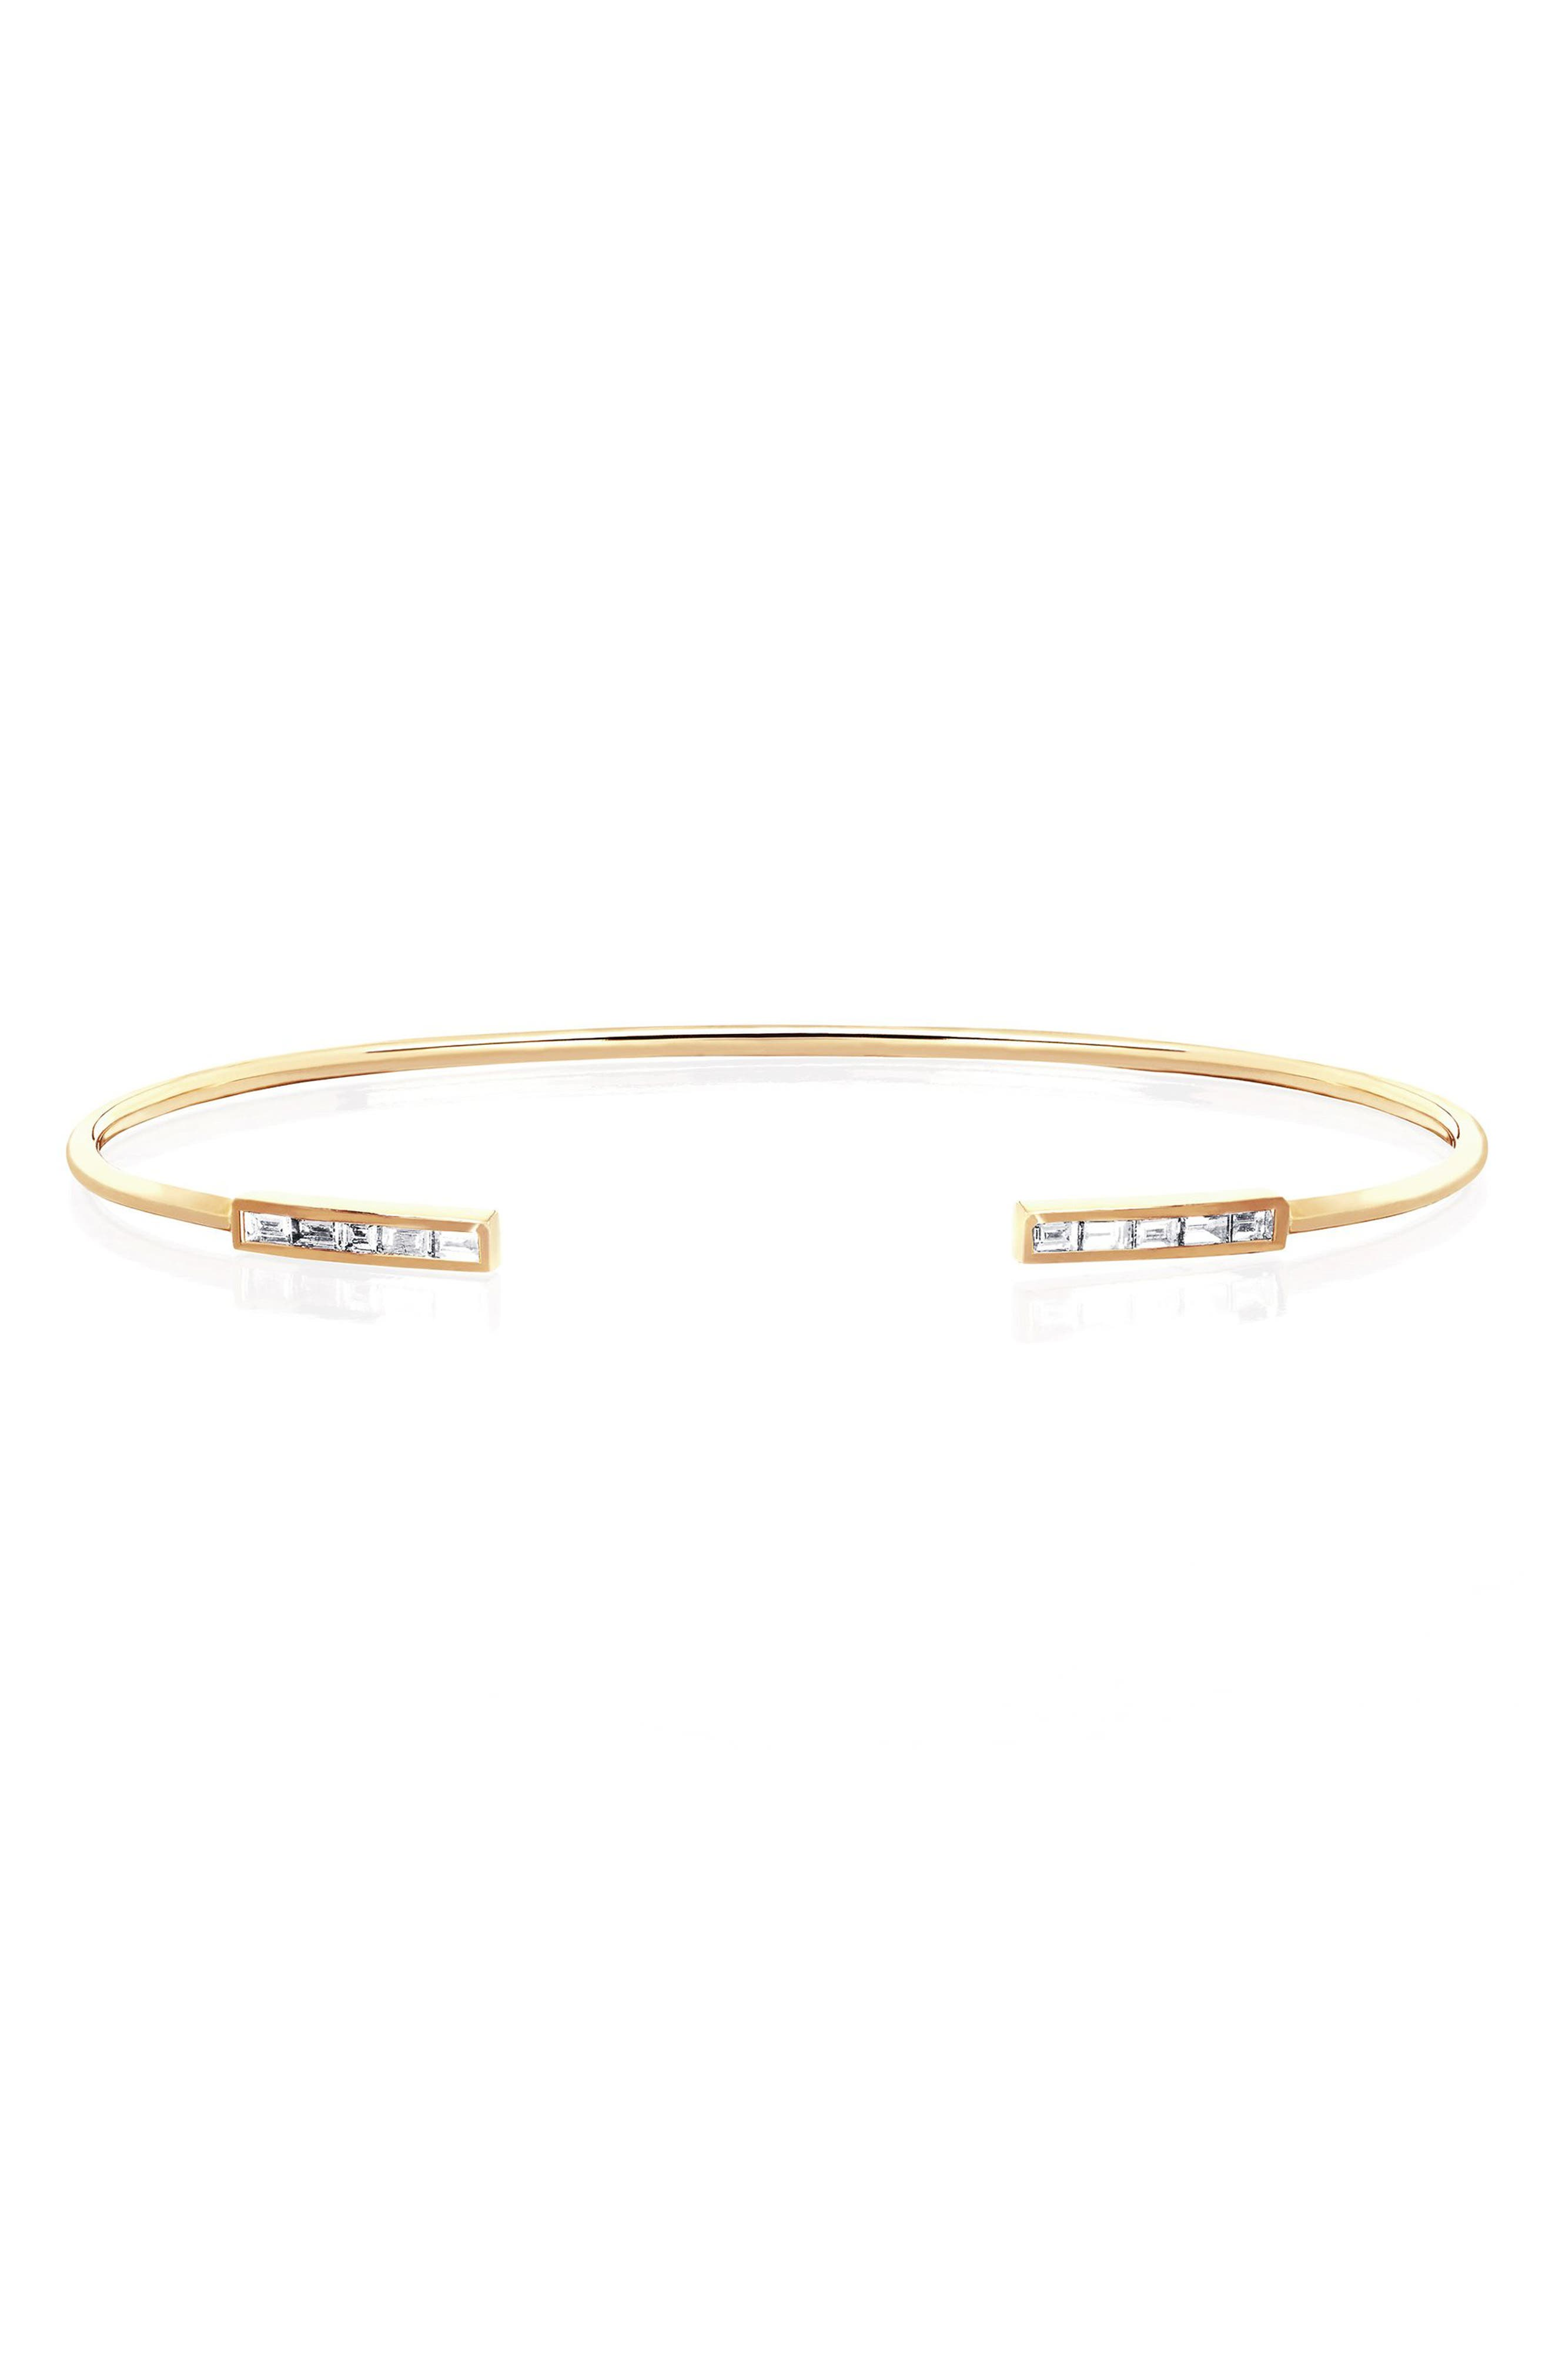 Baguette Diamond Cuff,                         Main,                         color, YELLOW GOLD